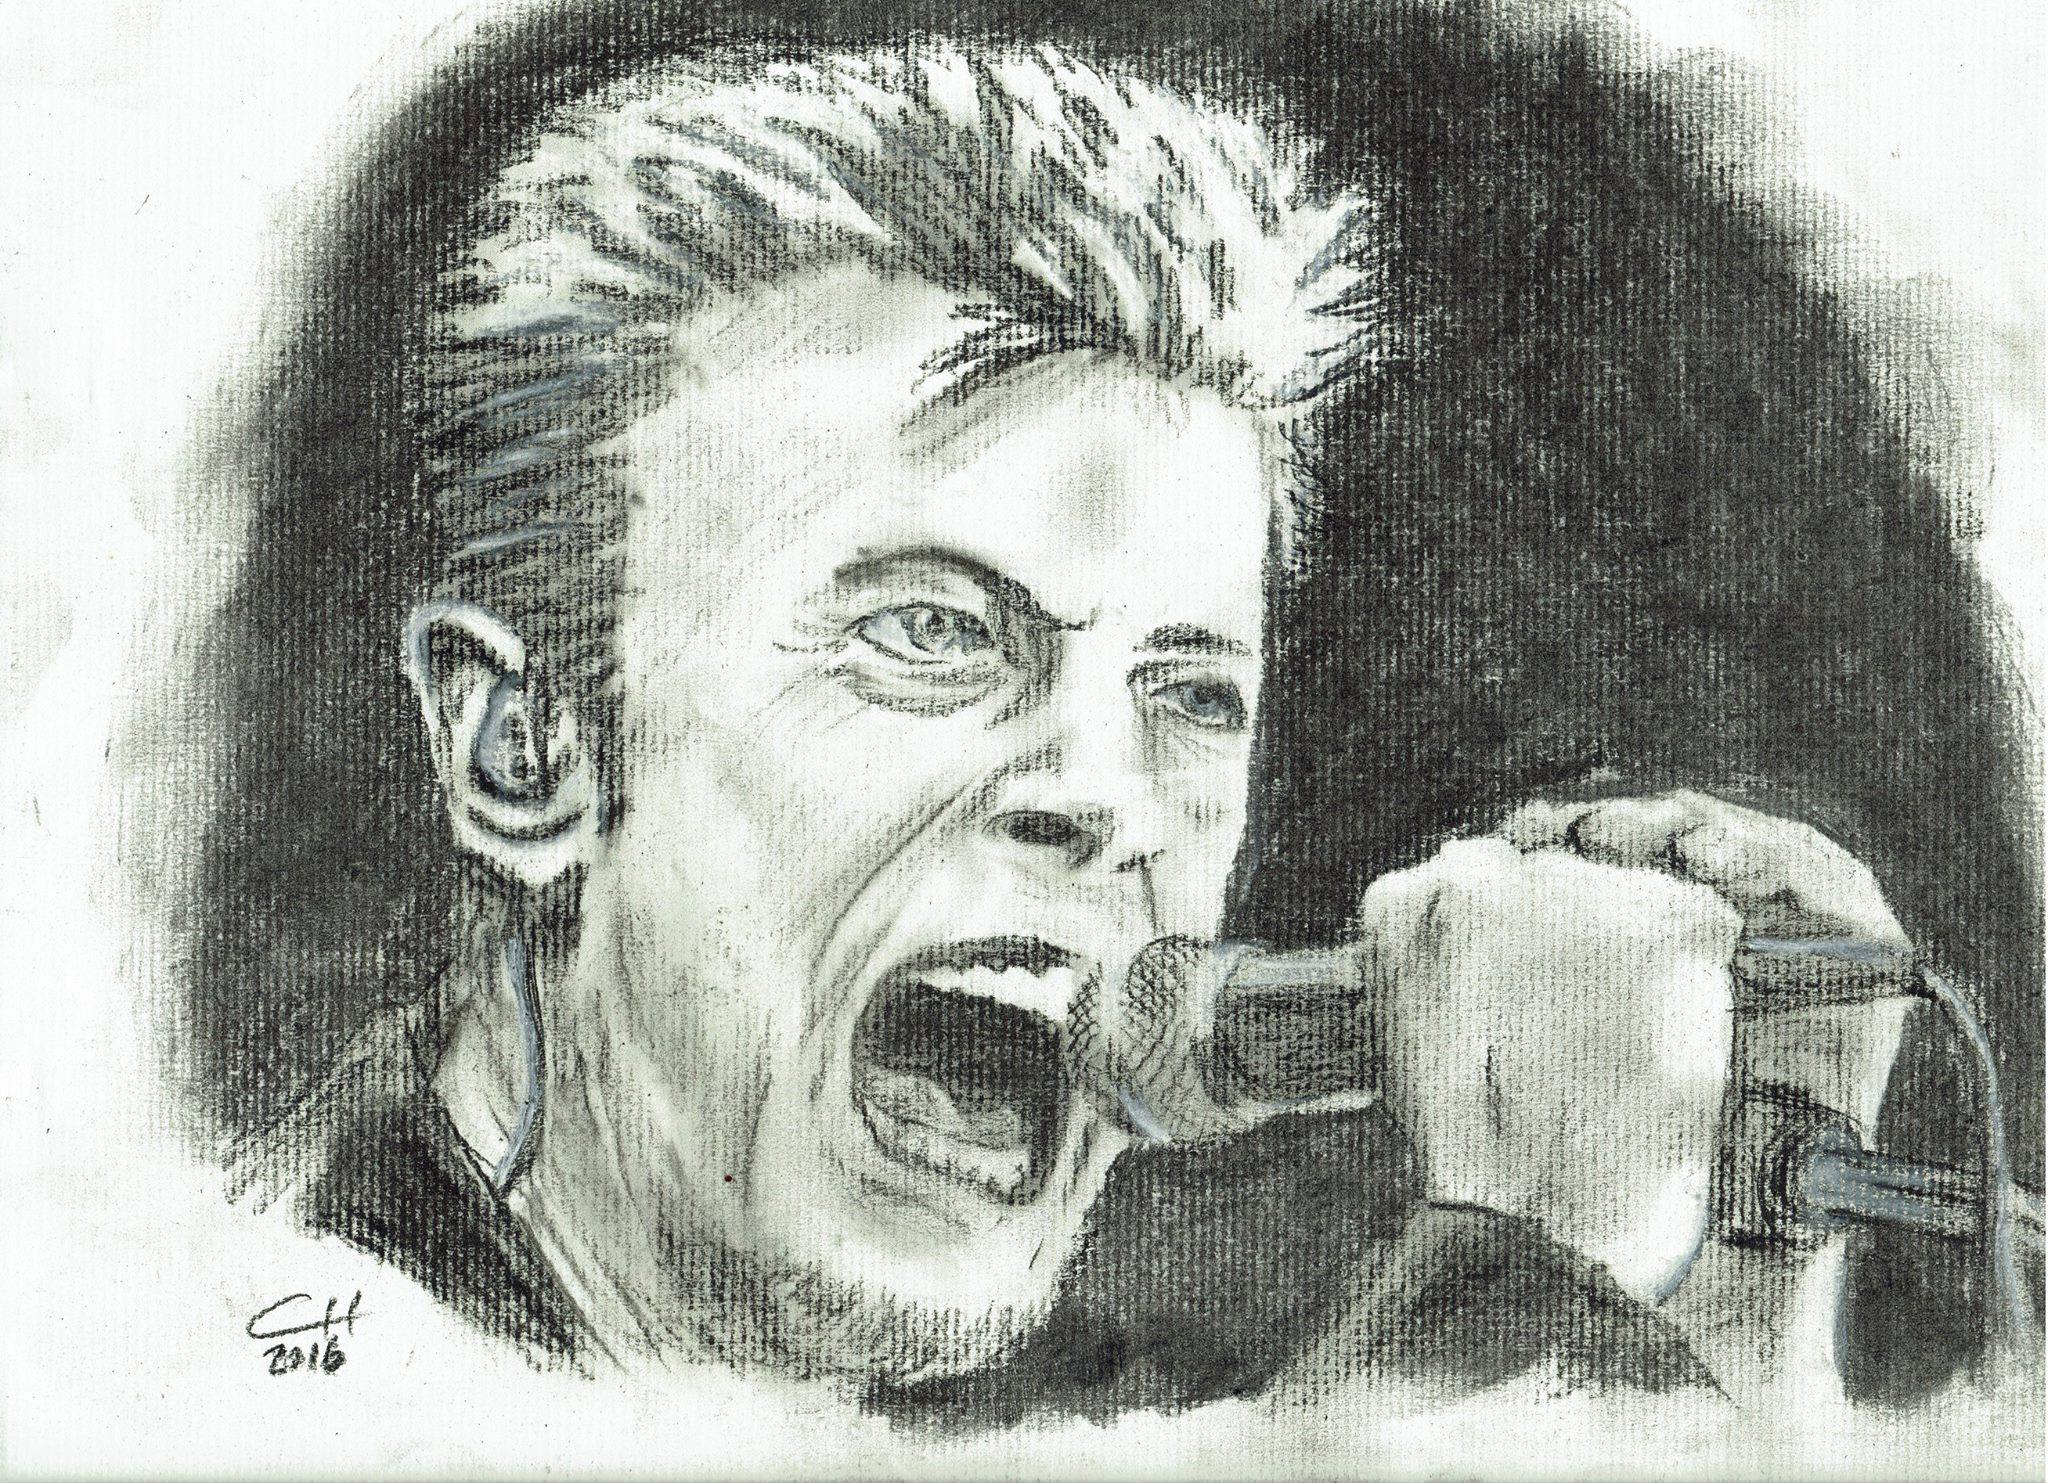 David Bowie - Charcoal